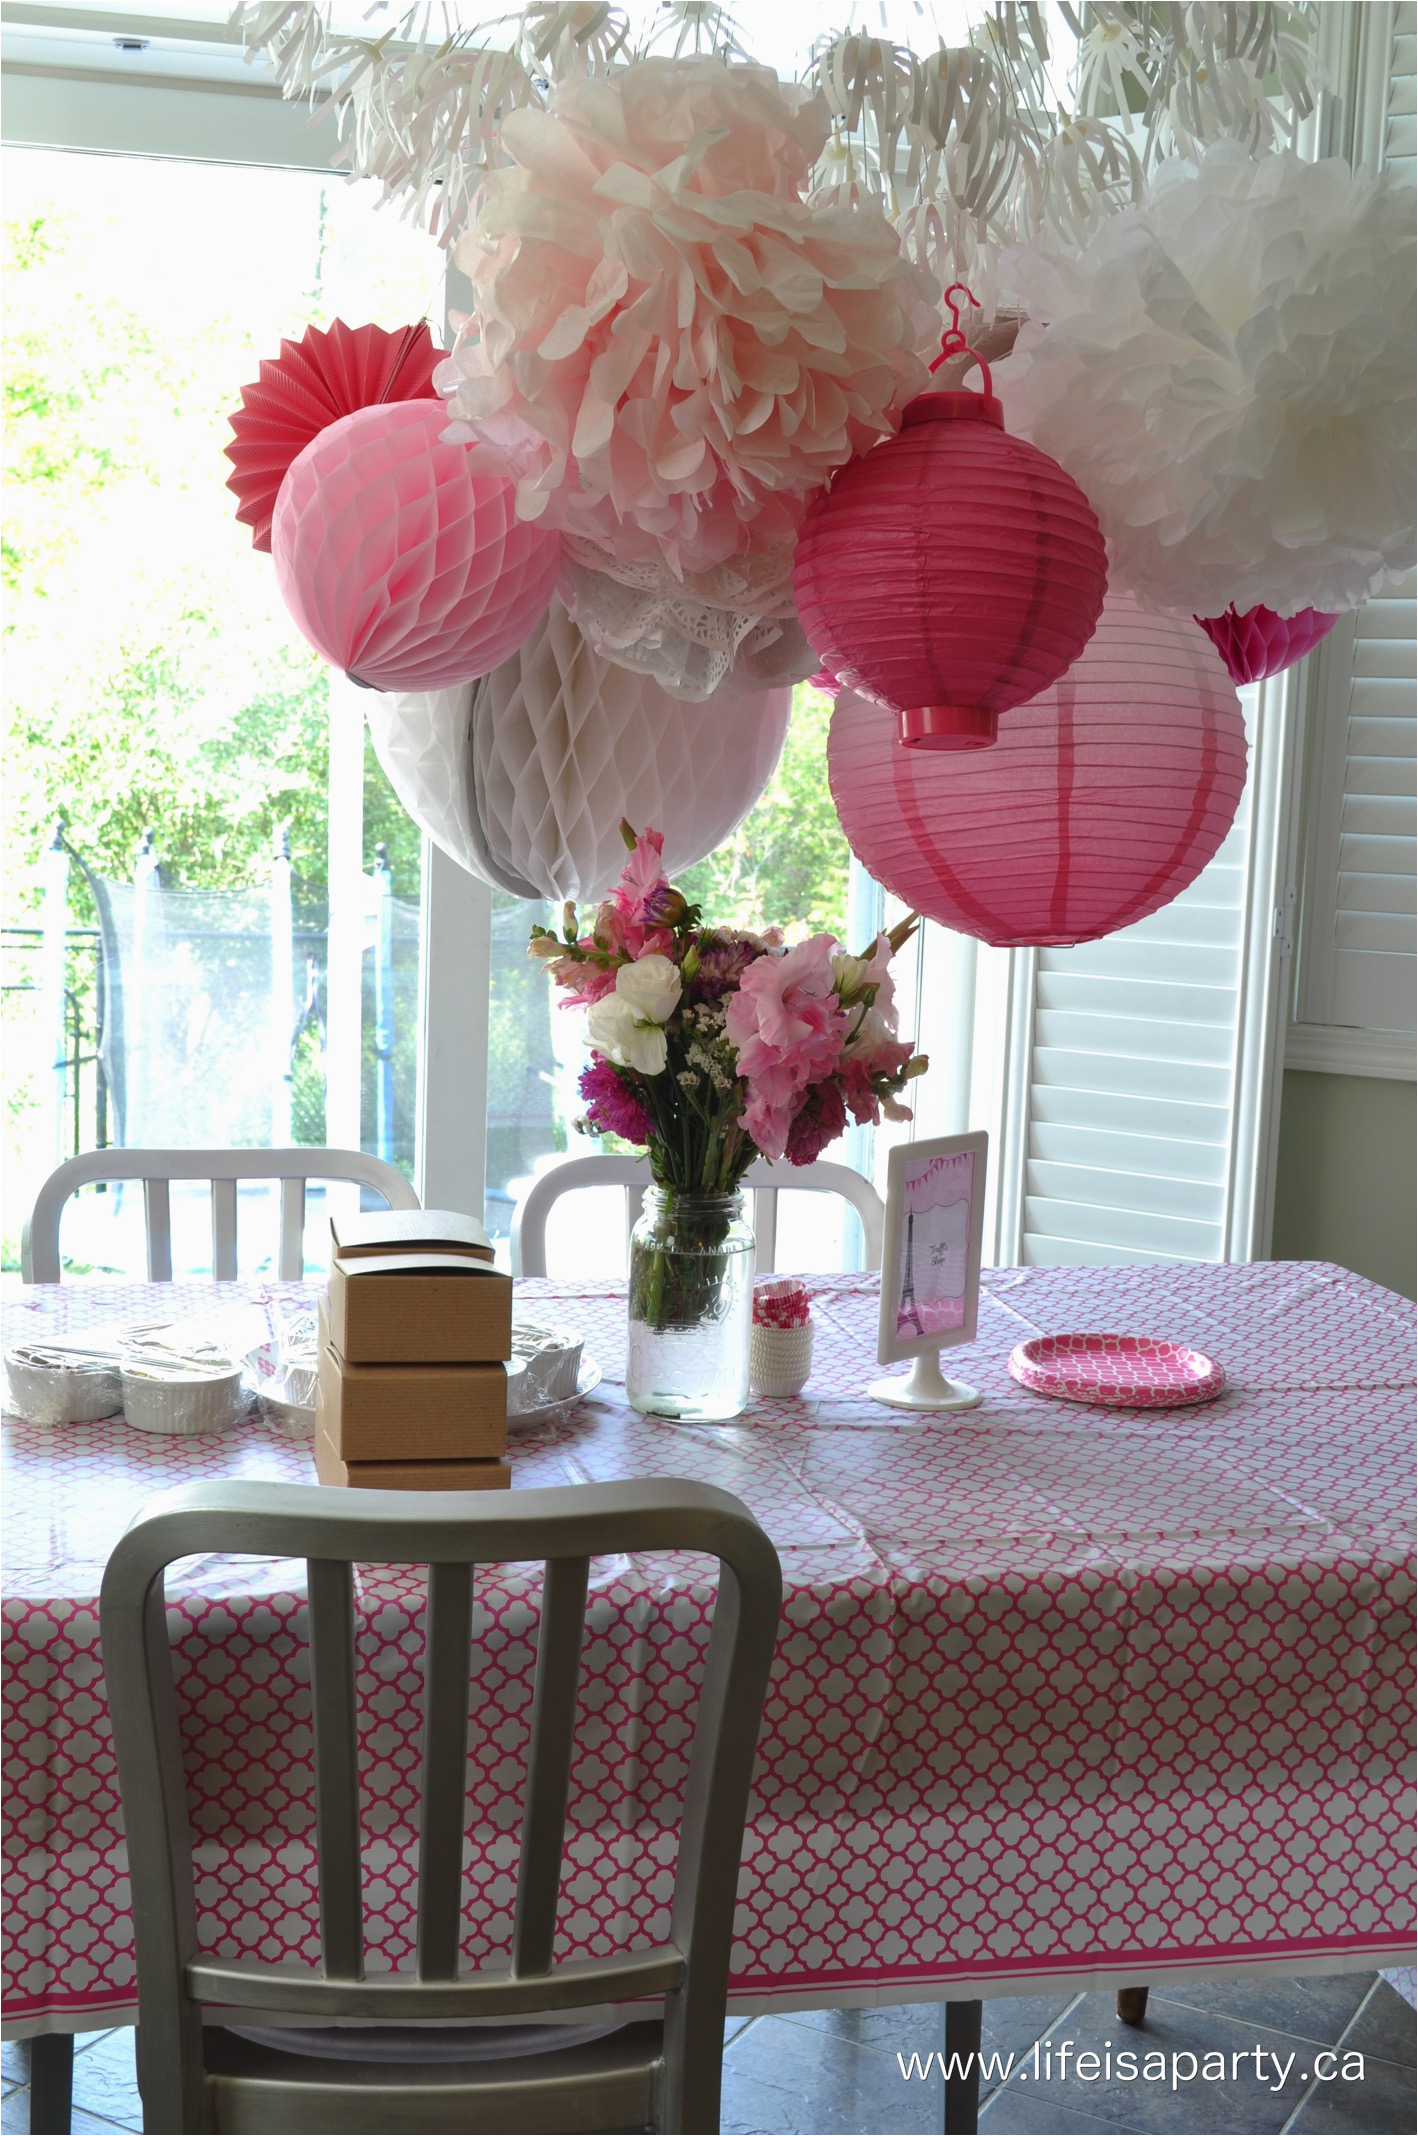 Paris themed Birthday Decorations Paris Birthday Party Part One Party Activities and